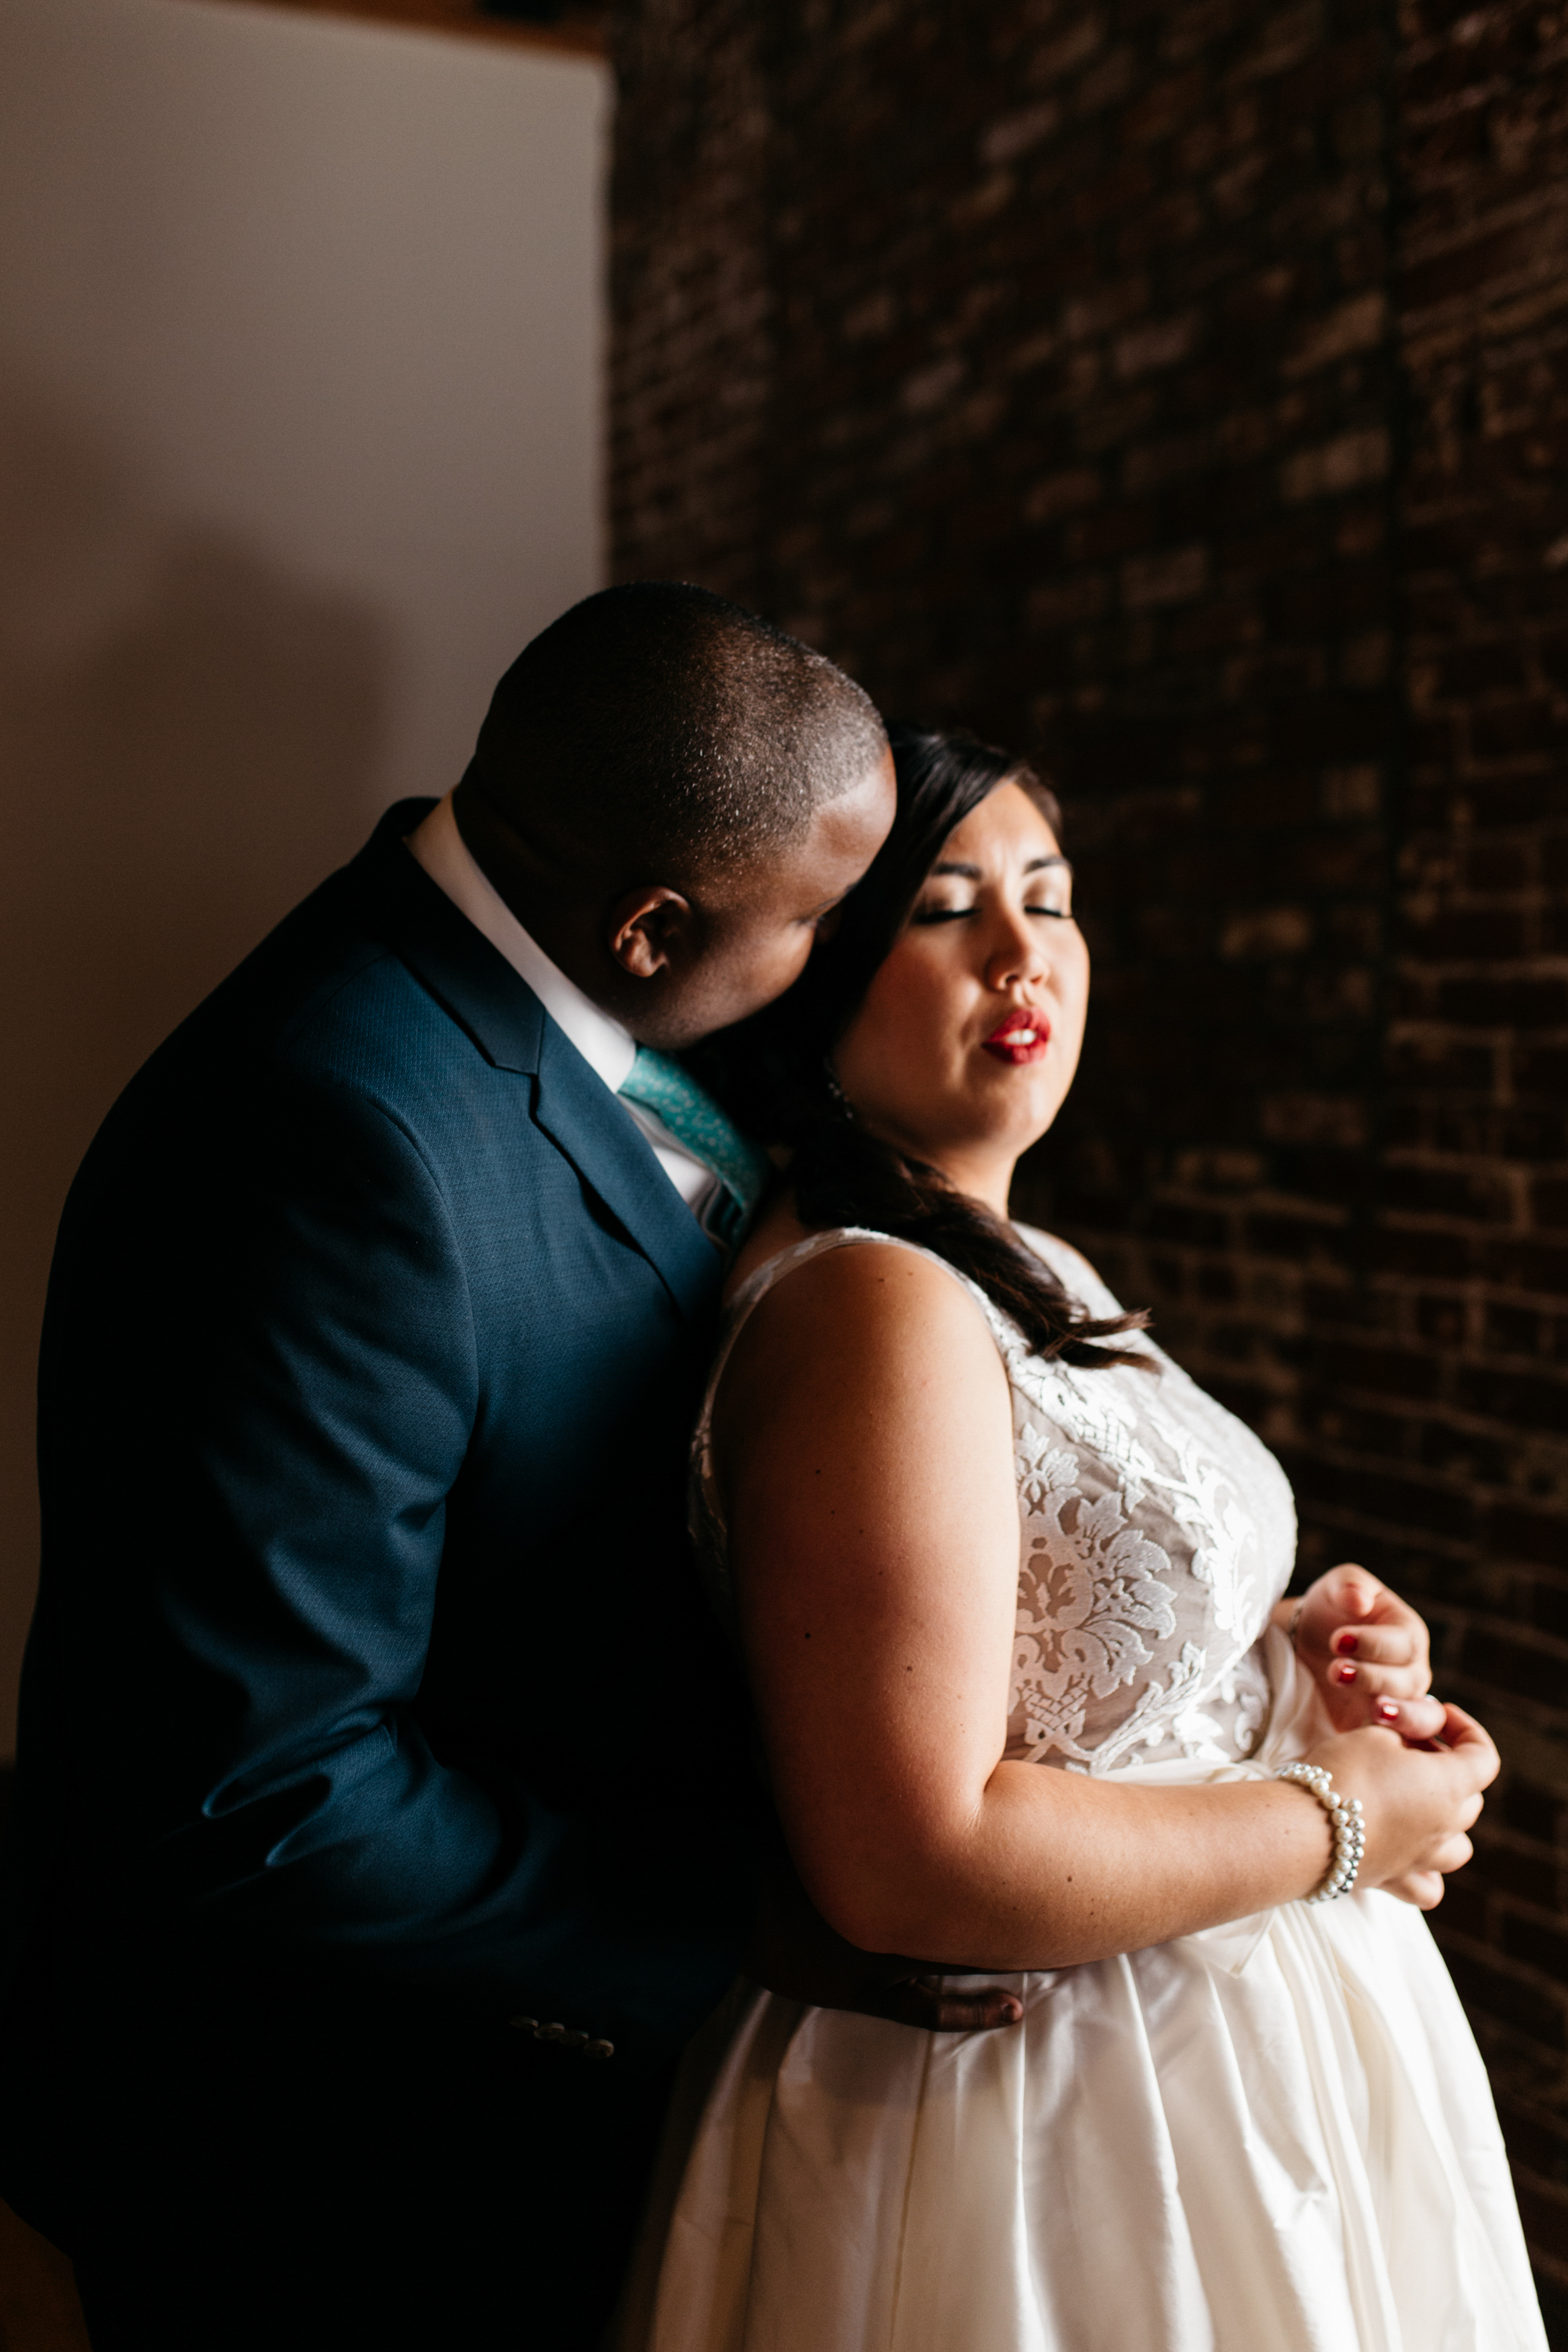 SamErica Studios - Los Angeles Wedding Photographer - The Loft on Pine-89.jpg